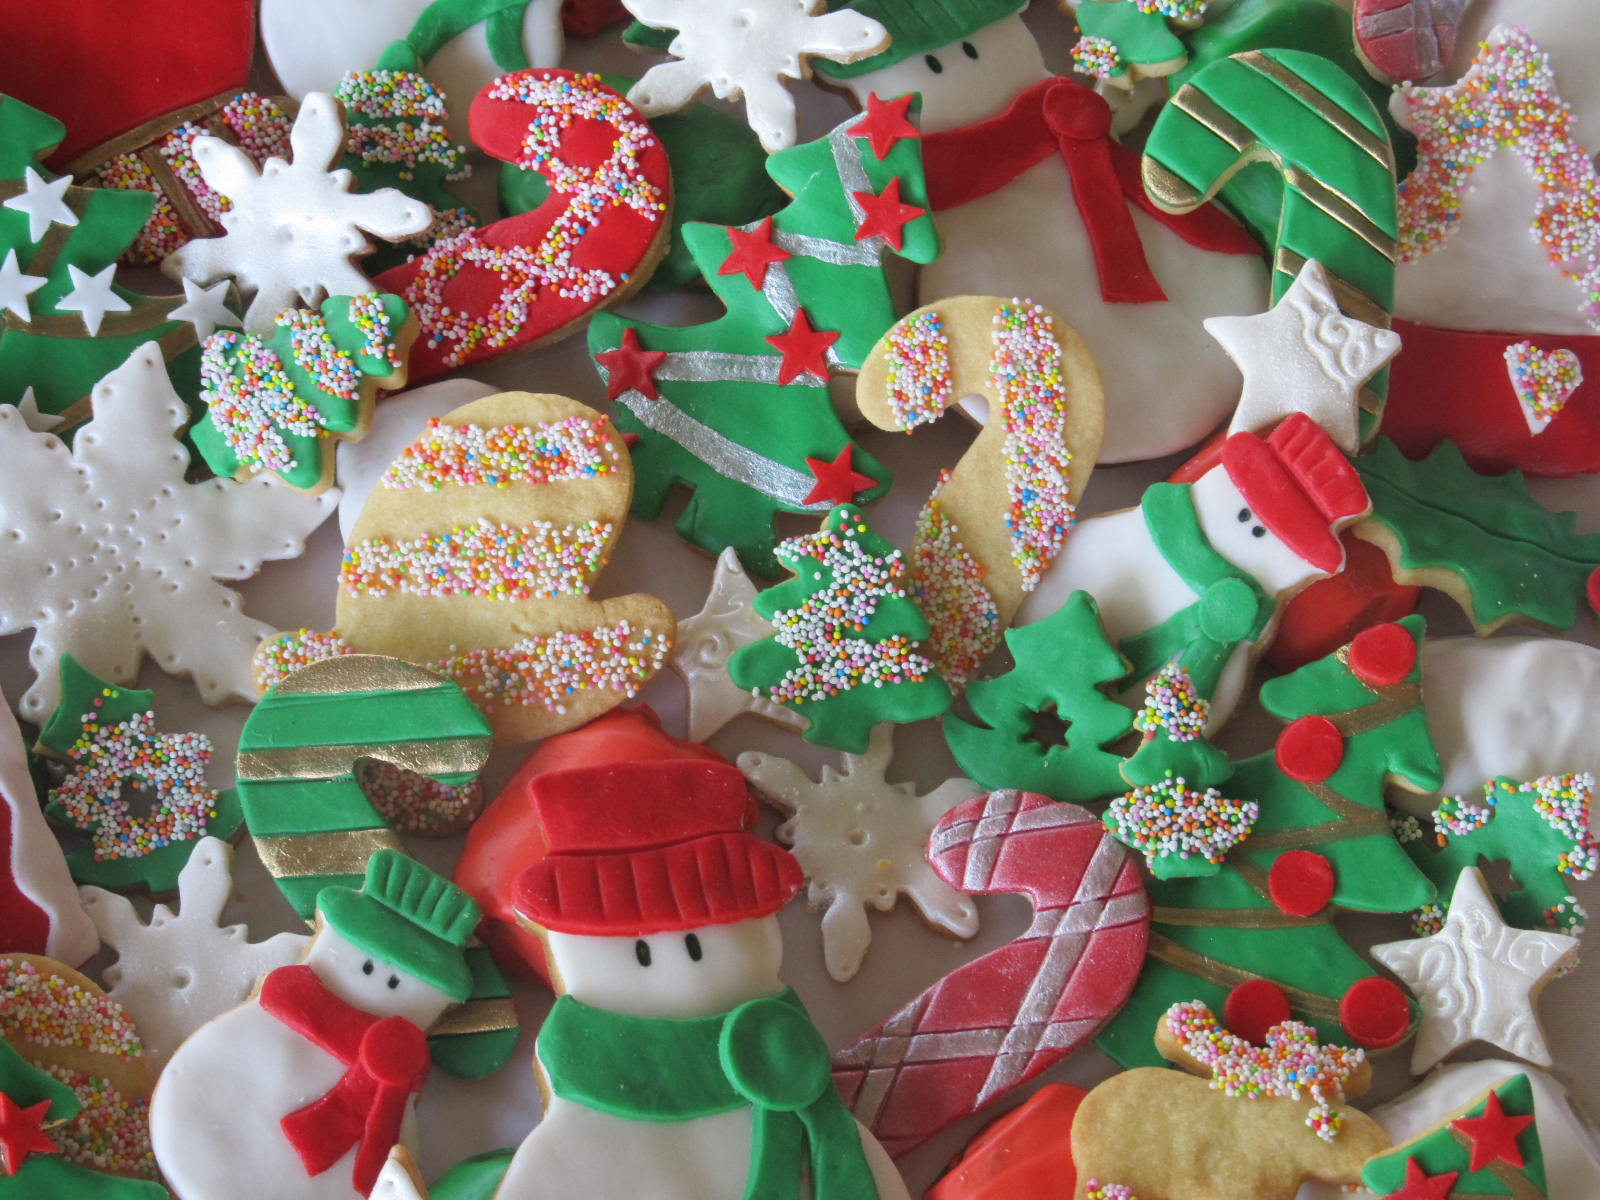 Cookies, toffee, Christmas cakes, picnics and more.